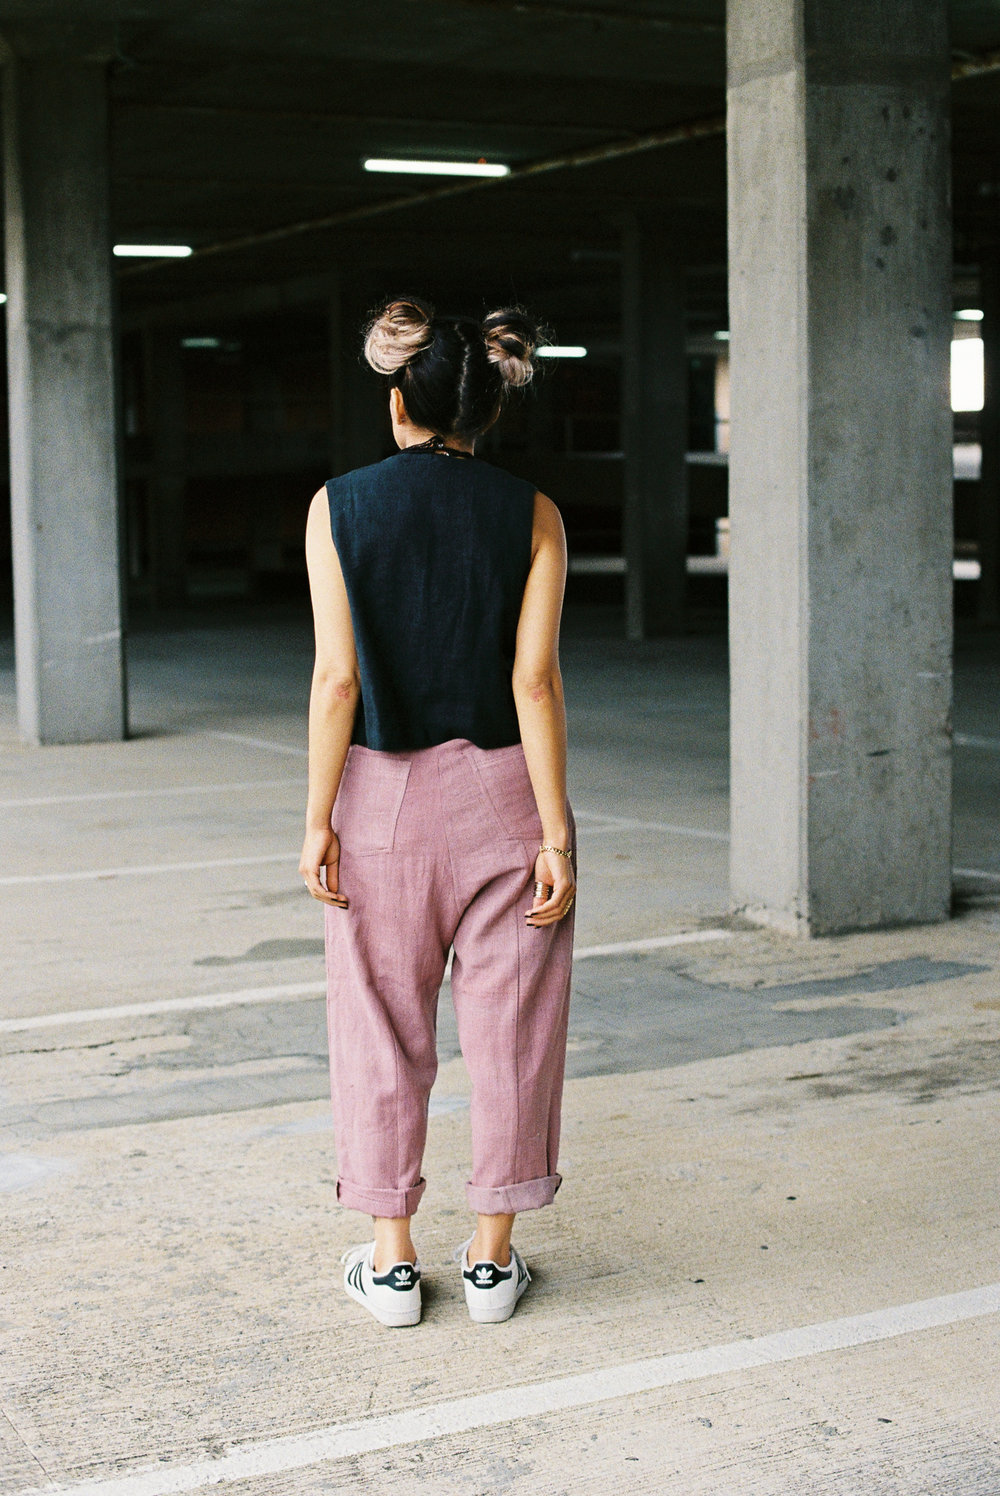 blackvestpinkpants-1.jpg